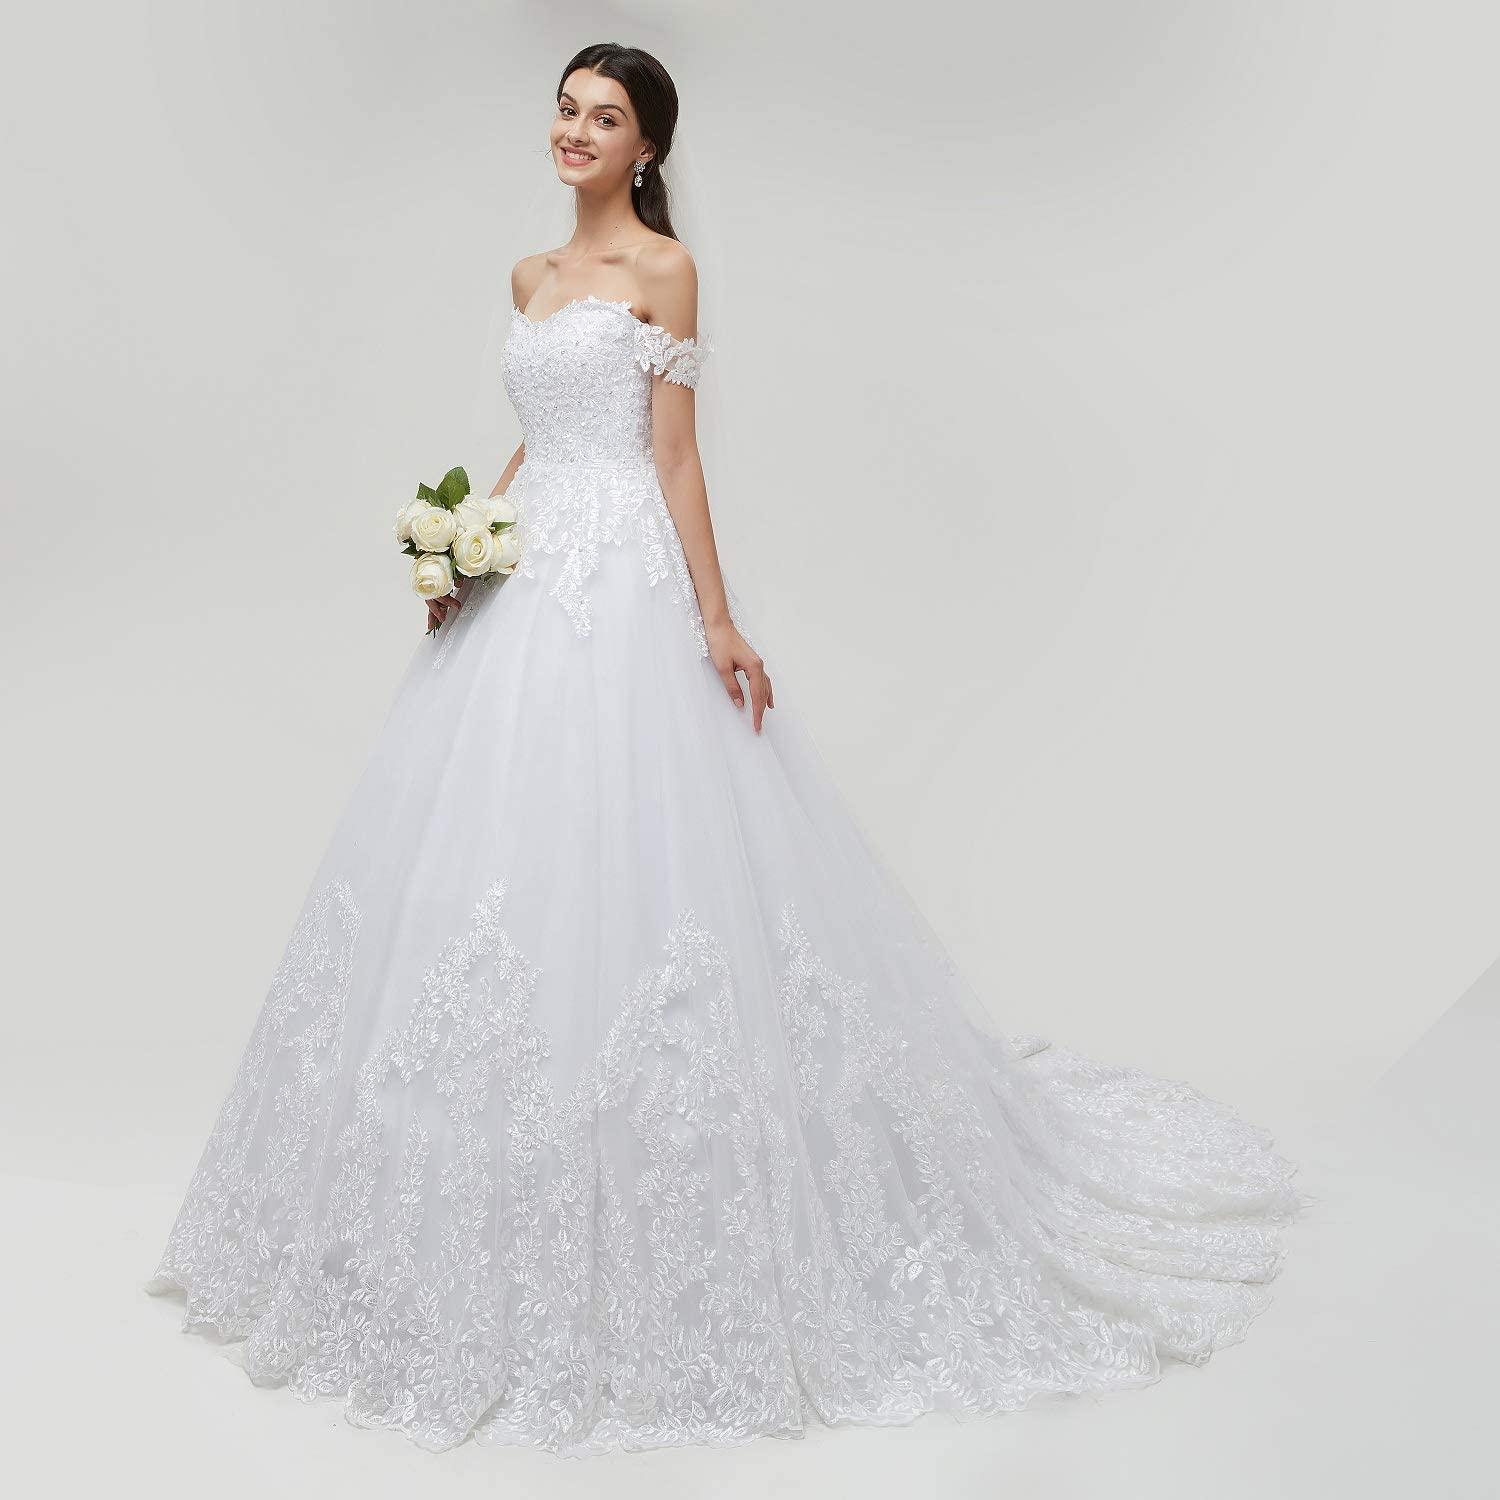 Amazon Com Engerla Womens Princess Off The Shoulder Wedding Dress Applique Chapel Train Bridal Ball Gown Plus Size Clothing,Wedding Dresses With Sleeves And Pockets